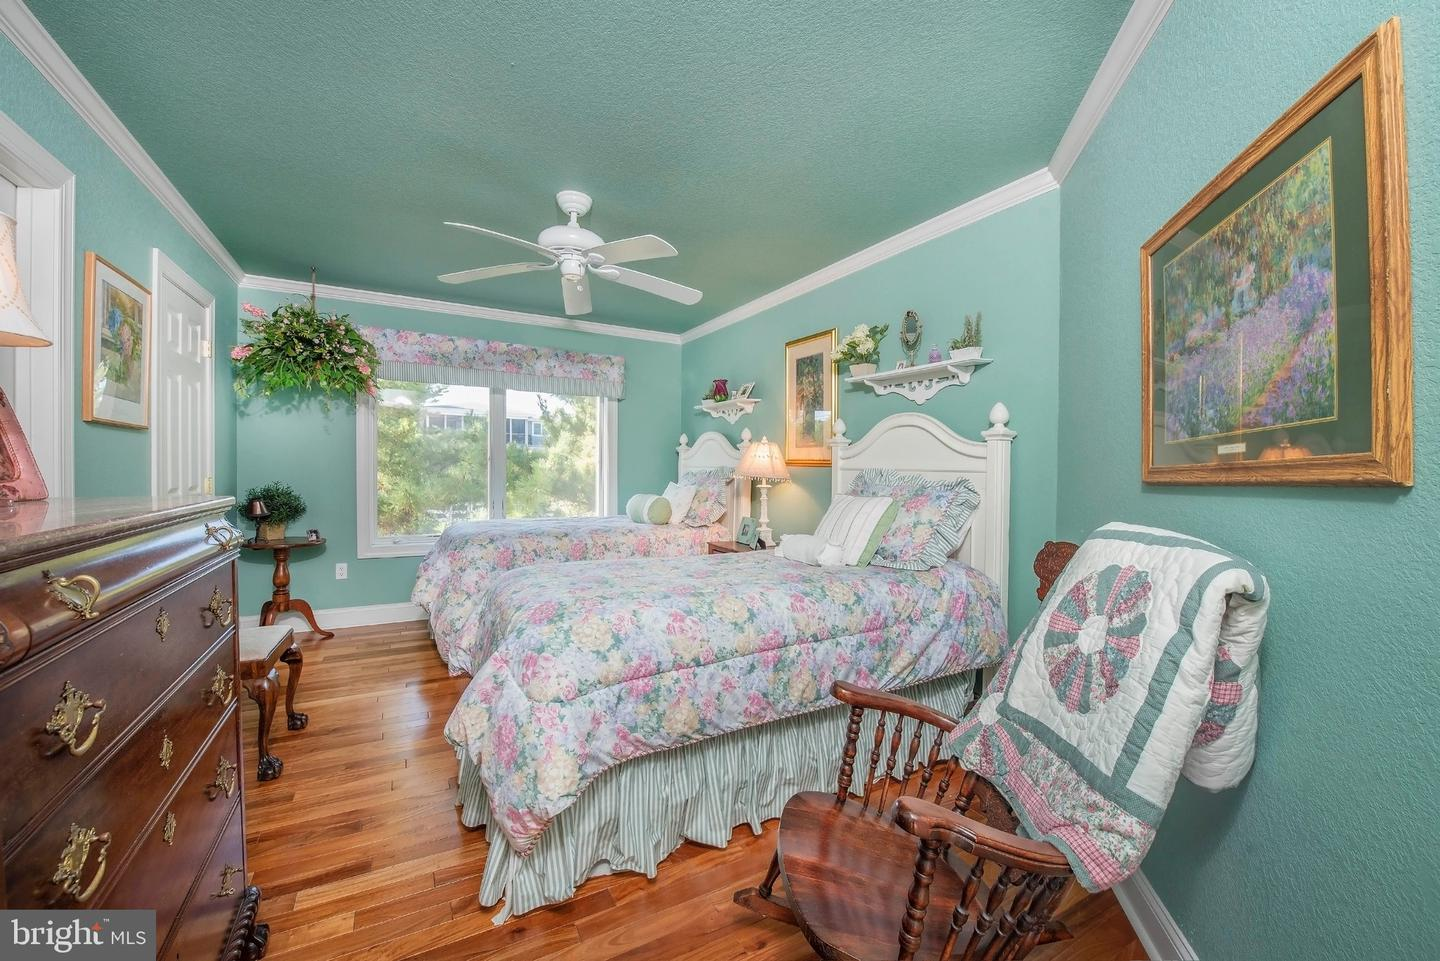 DESU147280-302007869371-2019-08-31-13-42-10 810 Bunting Ave | Fenwick Island, DE Real Estate For Sale | MLS# Desu147280  - Jack Lingo REALTOR